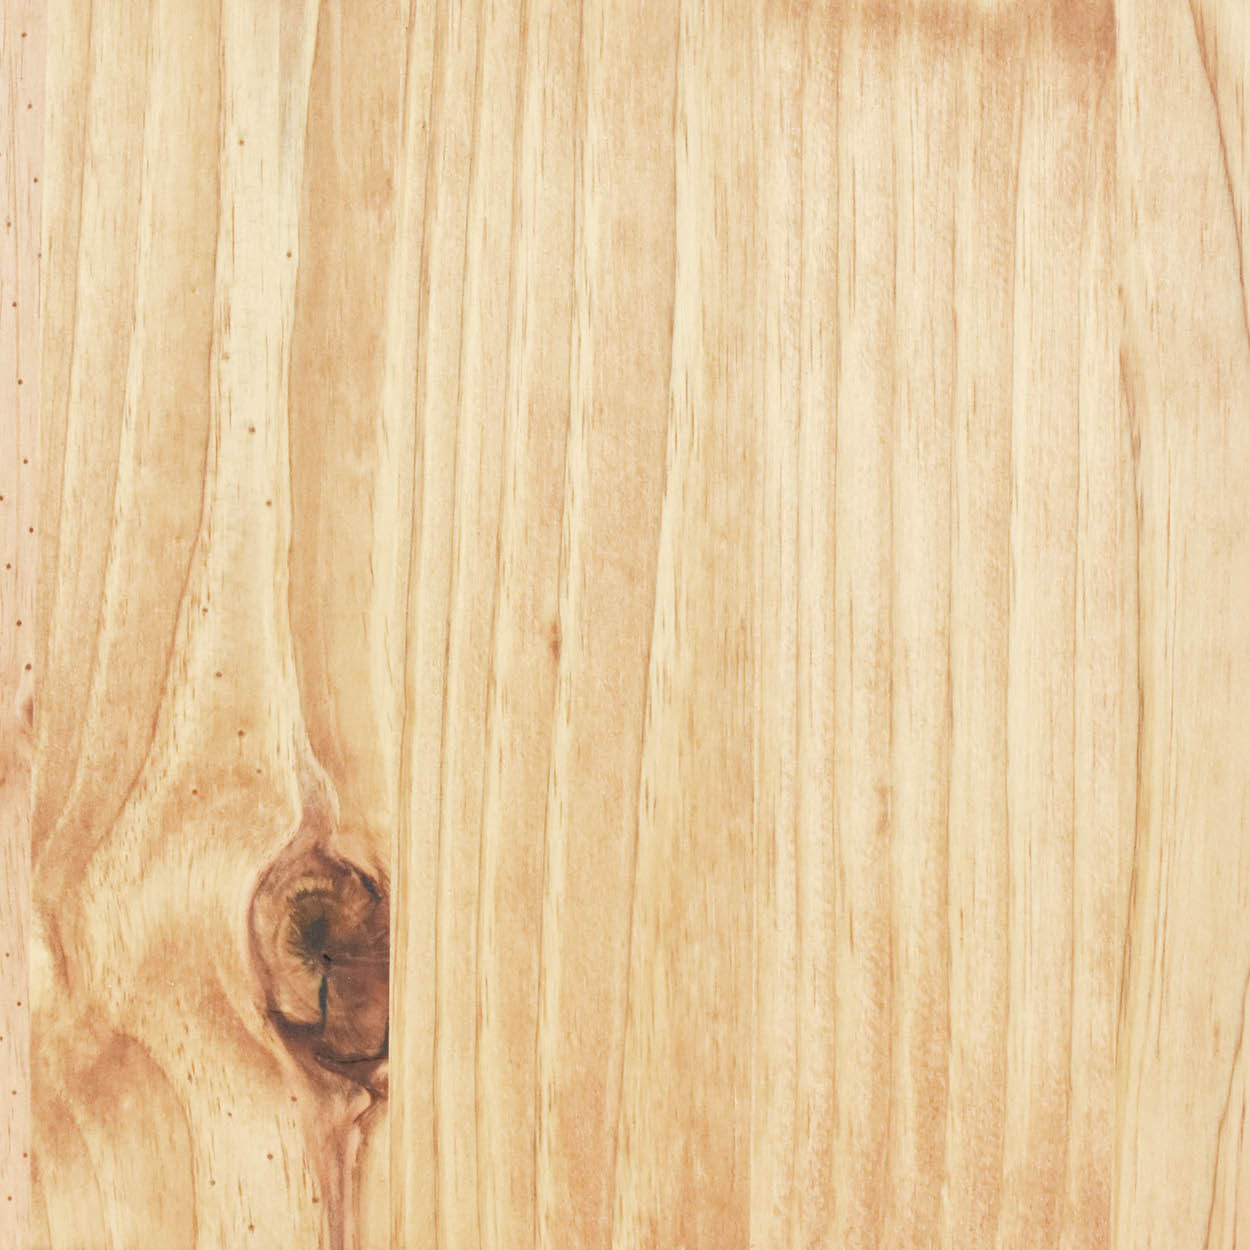 New Wood: Natural